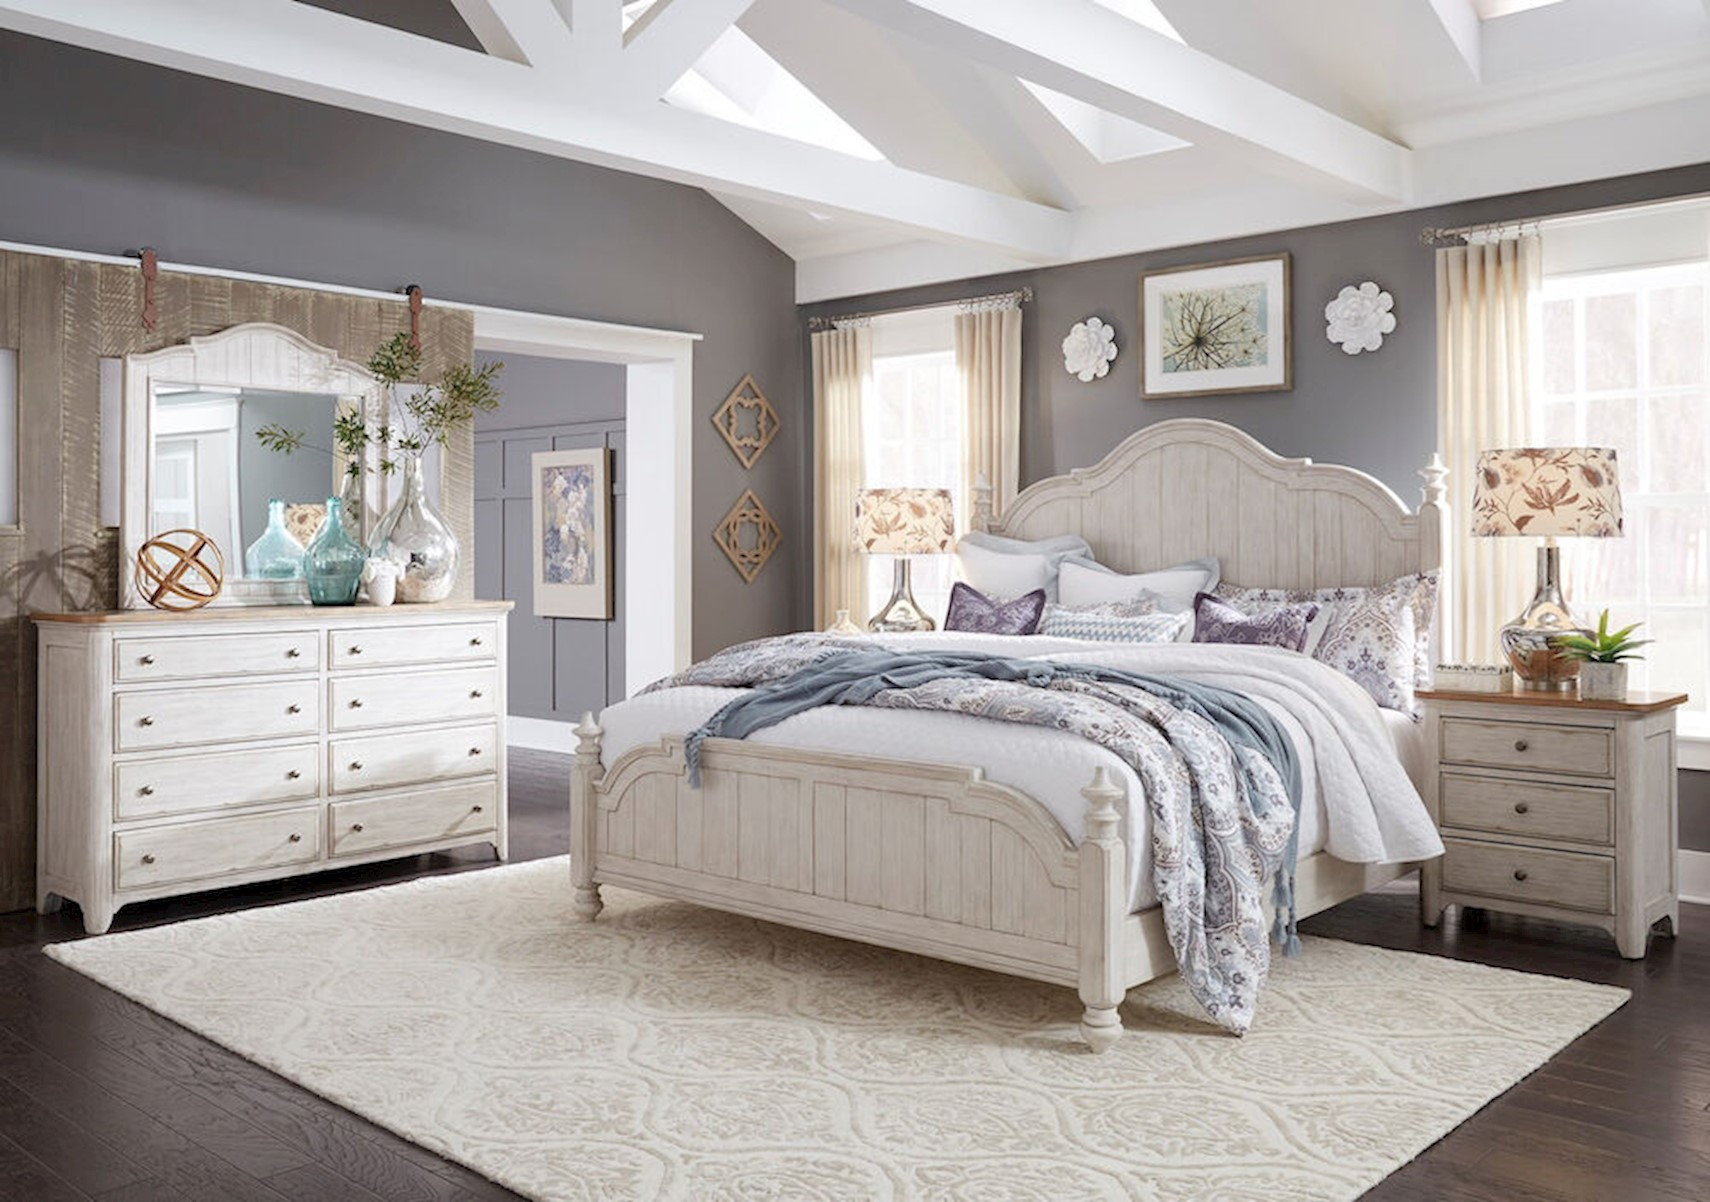 Lacks Farmhouse 4 Pc Queen Bedroom Set